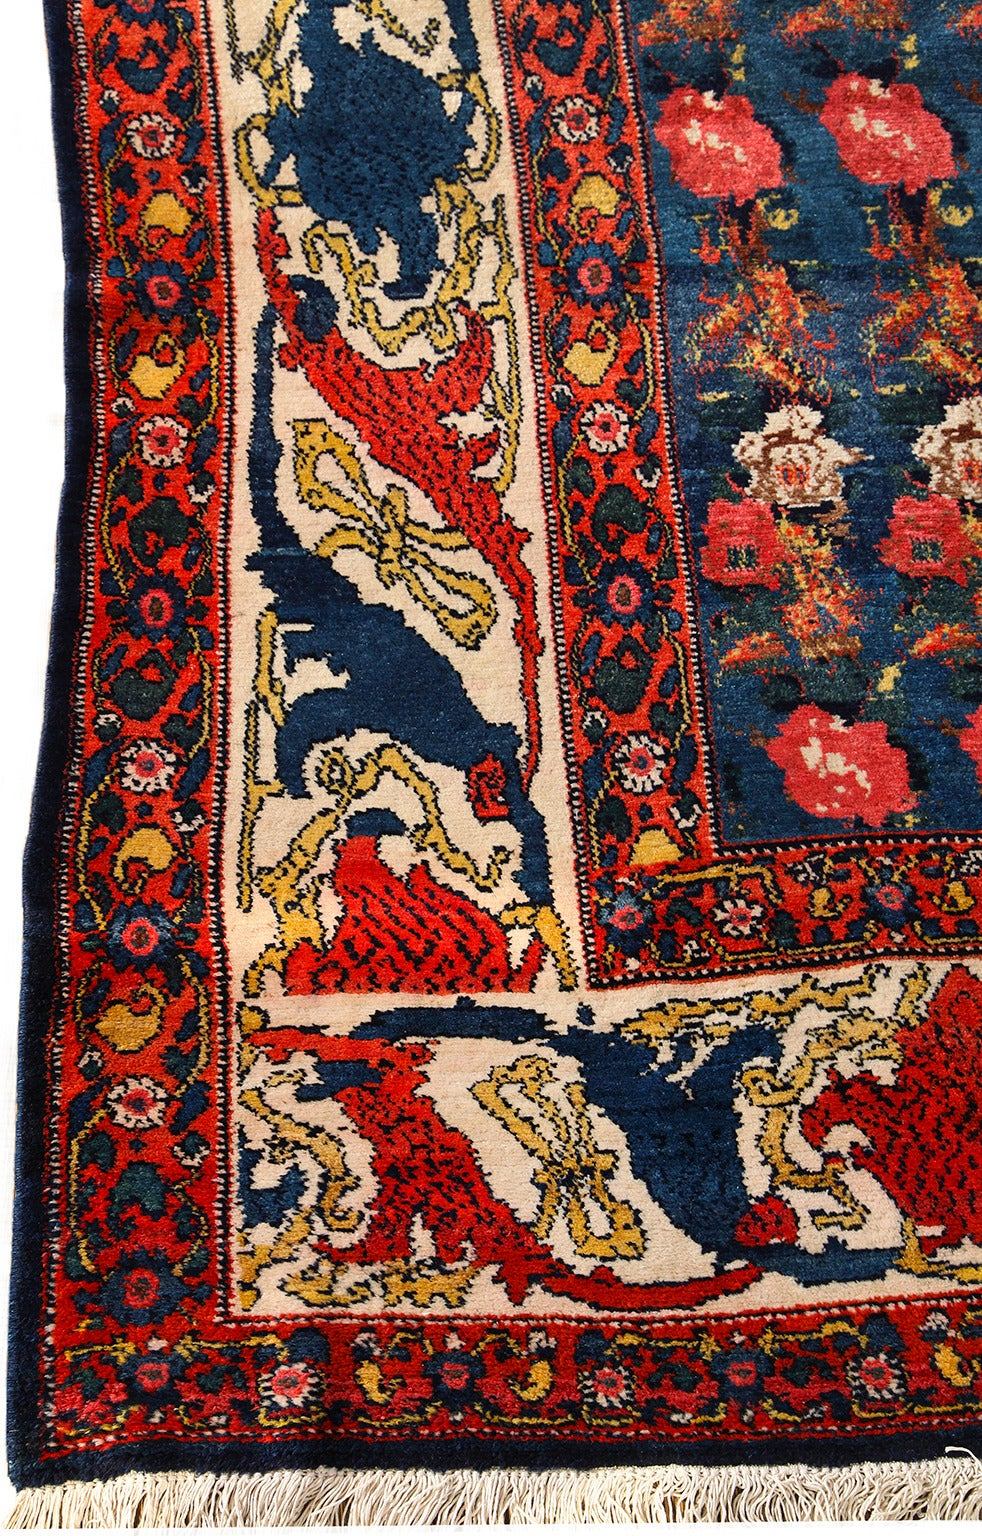 Vegetable Dyed Persian Senneh Carpet circa 1900 with Pure Wool Pile and Natural Vegetable Dyes For Sale